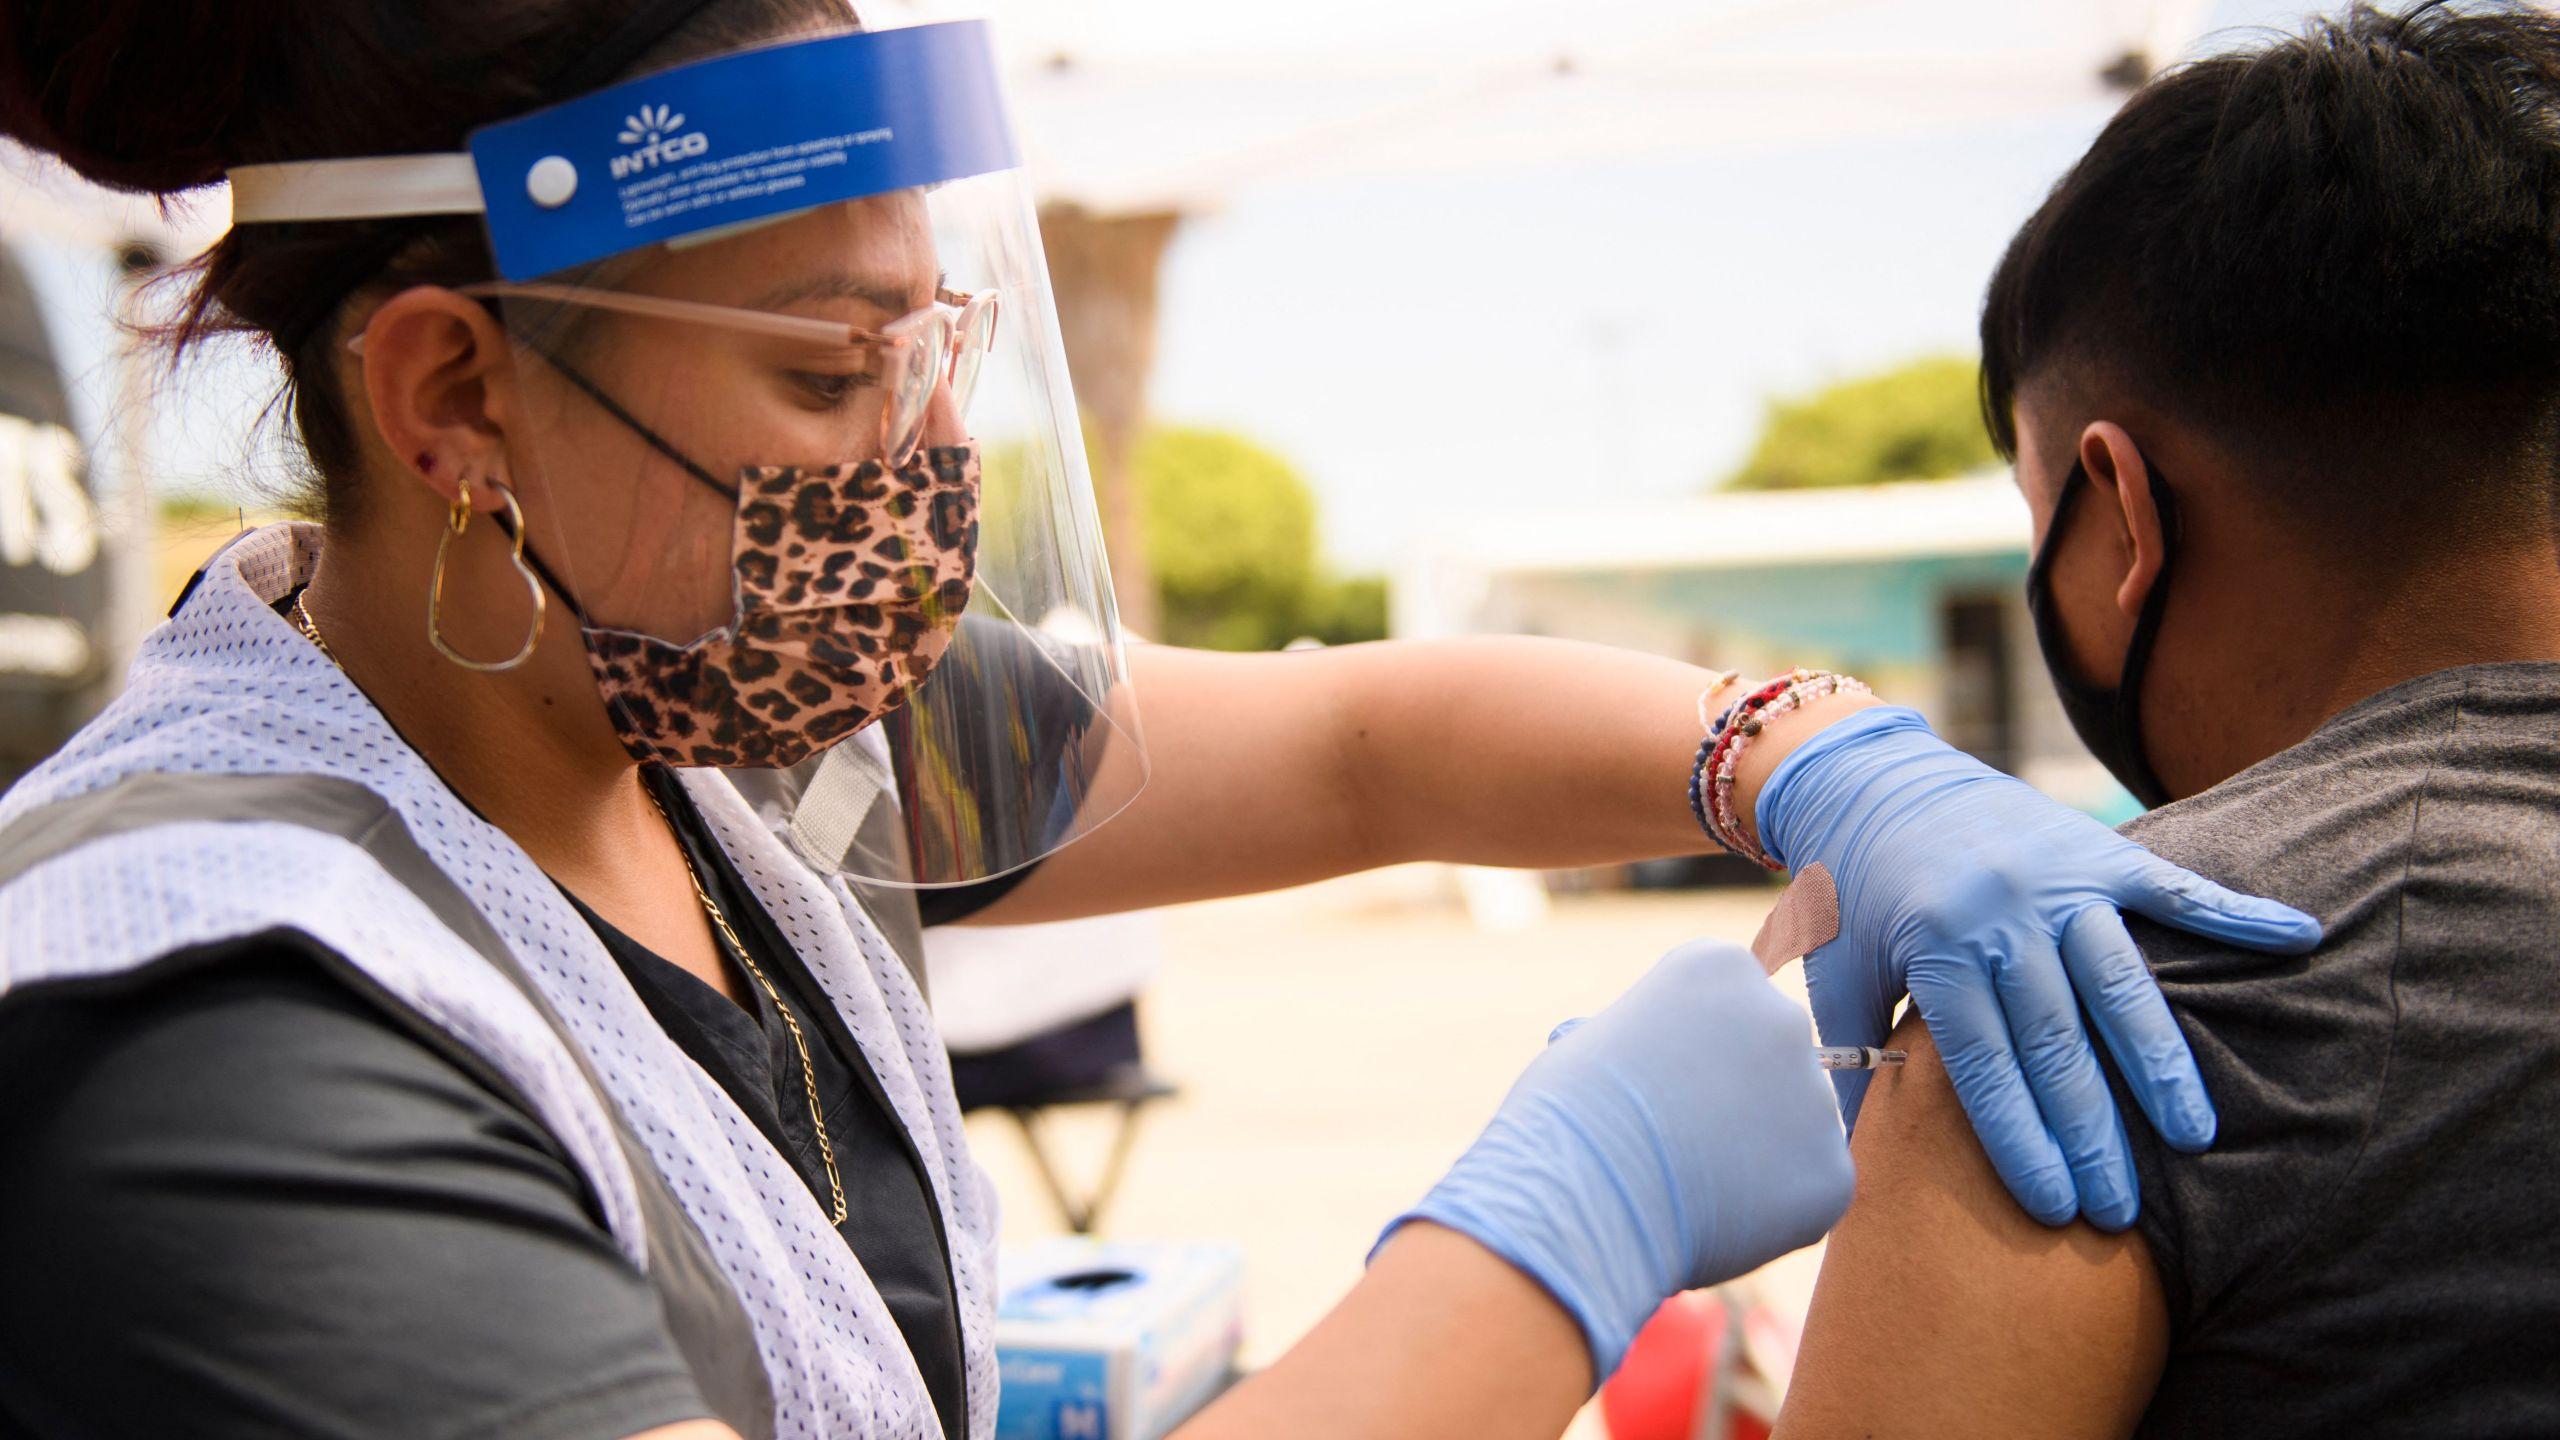 A 17-year-old receives a first dose of the Pfizer COVID-19 vaccine at a mobile vaccination clinic during a back to school event at the Weingart East Los Angeles YMCA in Los Angeles on Aug. 7, 2021. (PATRICK T. FALLON/AFP via Getty Images)